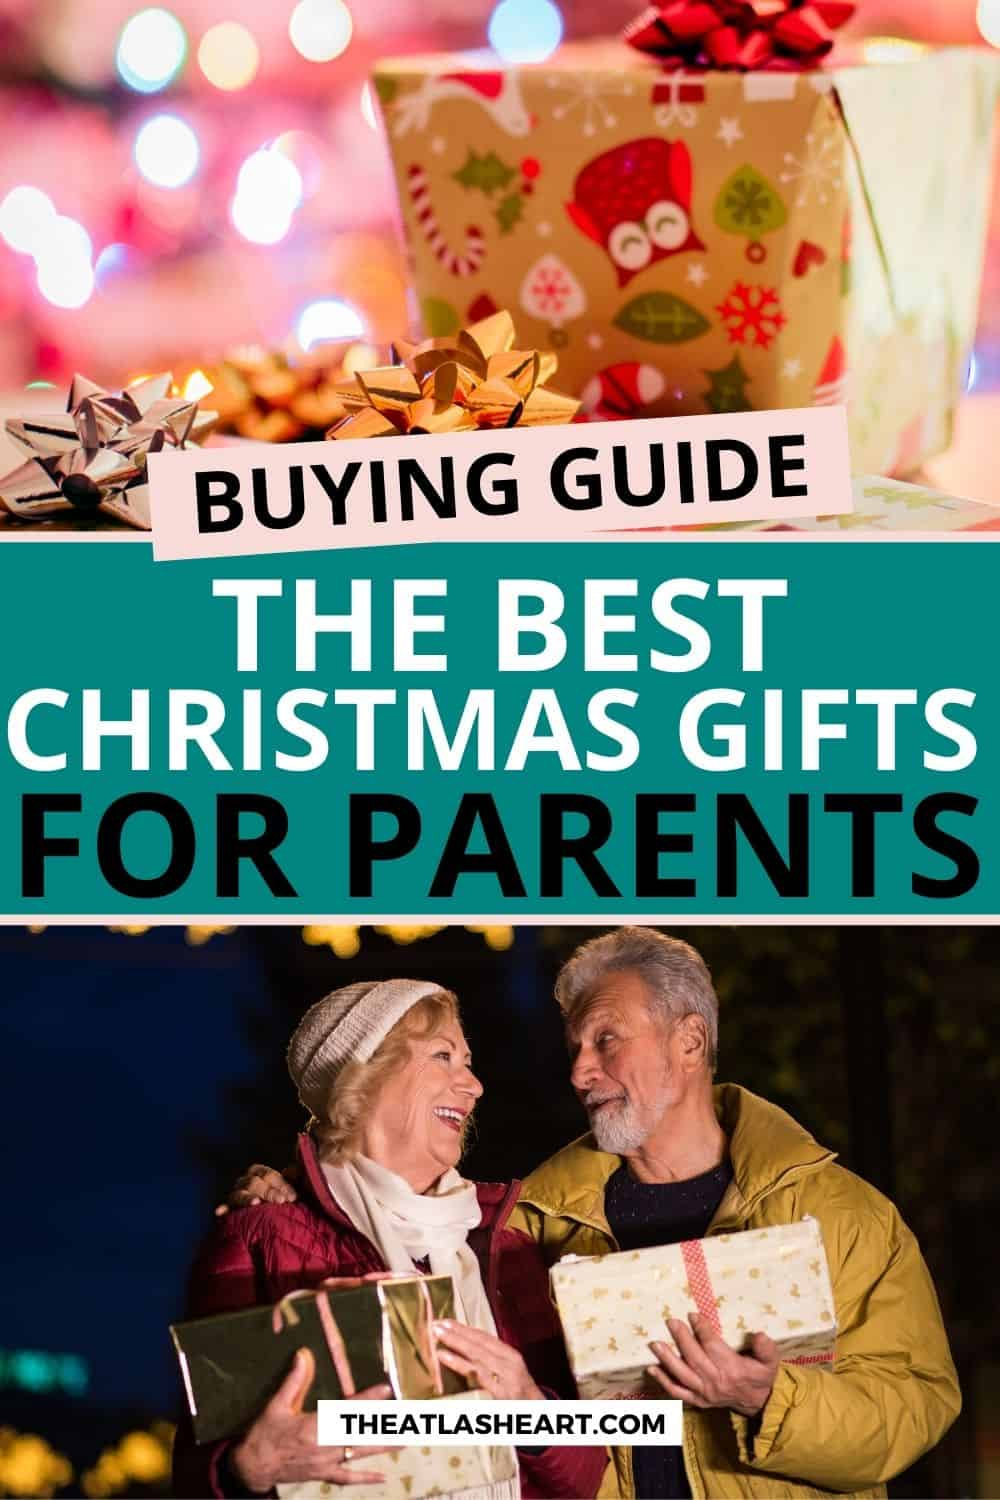 64 Best Christmas Gifts for Parents | Ultimate Gift Guide for 2021